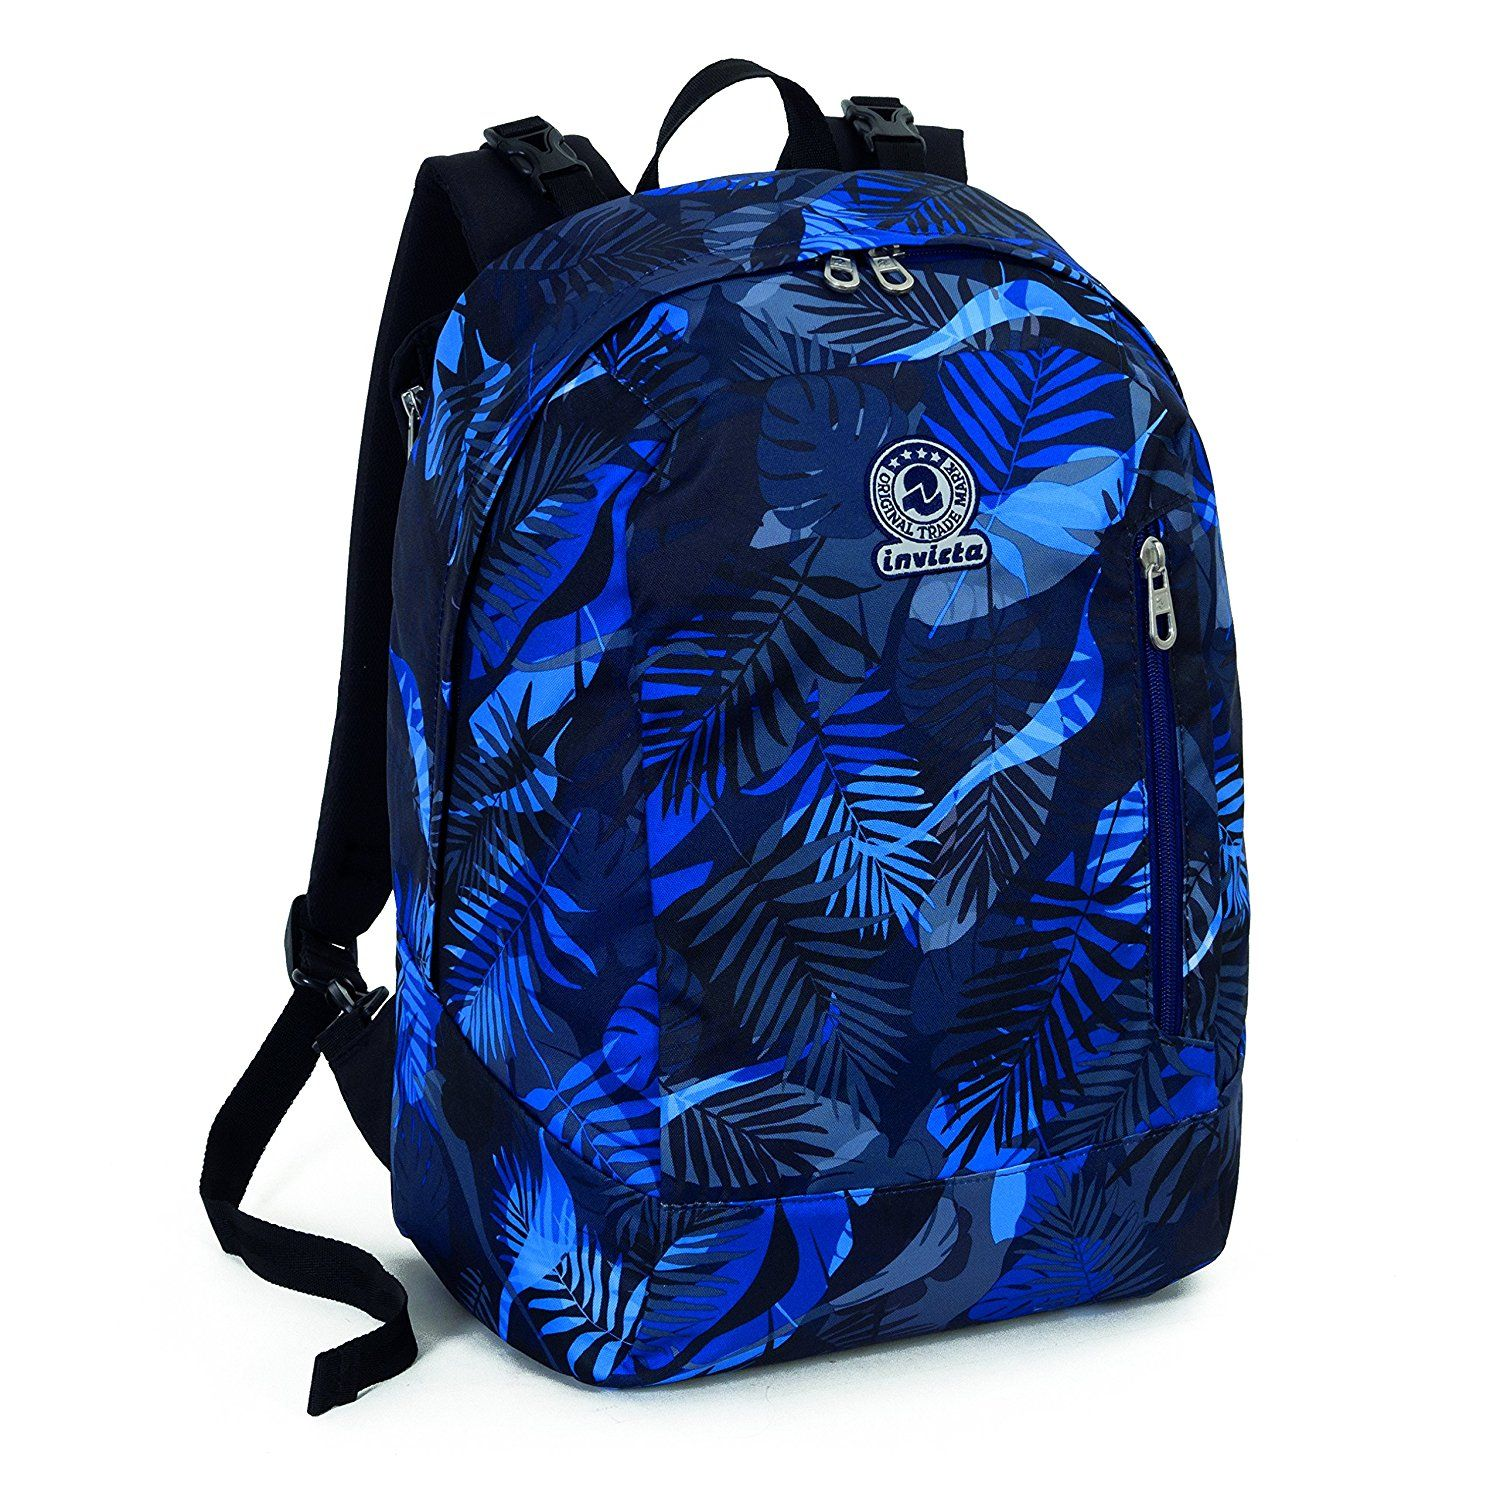 ceea9fcaa85 ZAINO REVERSIBILE INVICTA TWIST - EXOTIC - Blu 26Lt: Amazon.it ...